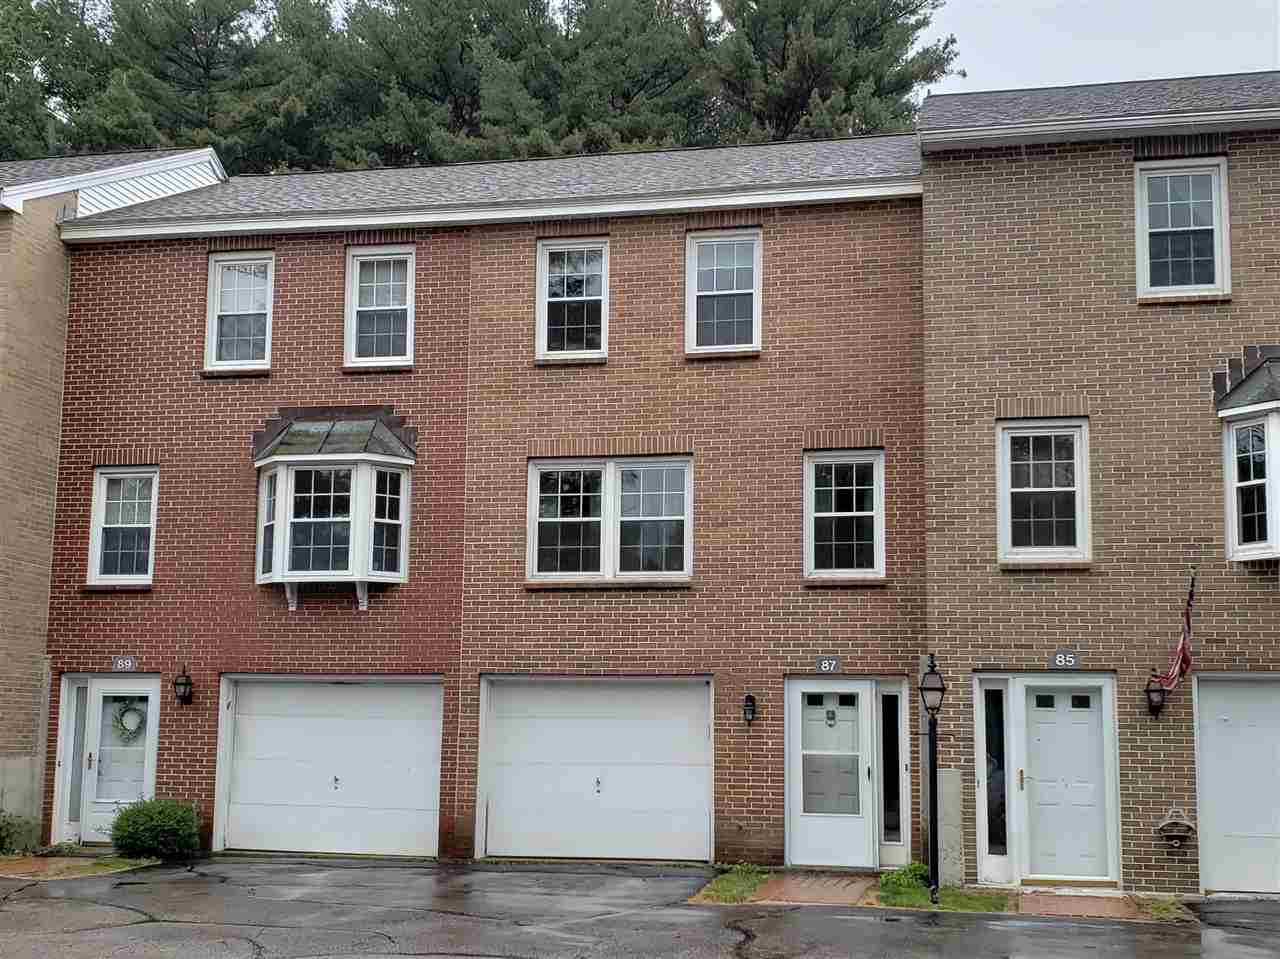 image of Manchester NH Condo | sq.ft. 1674